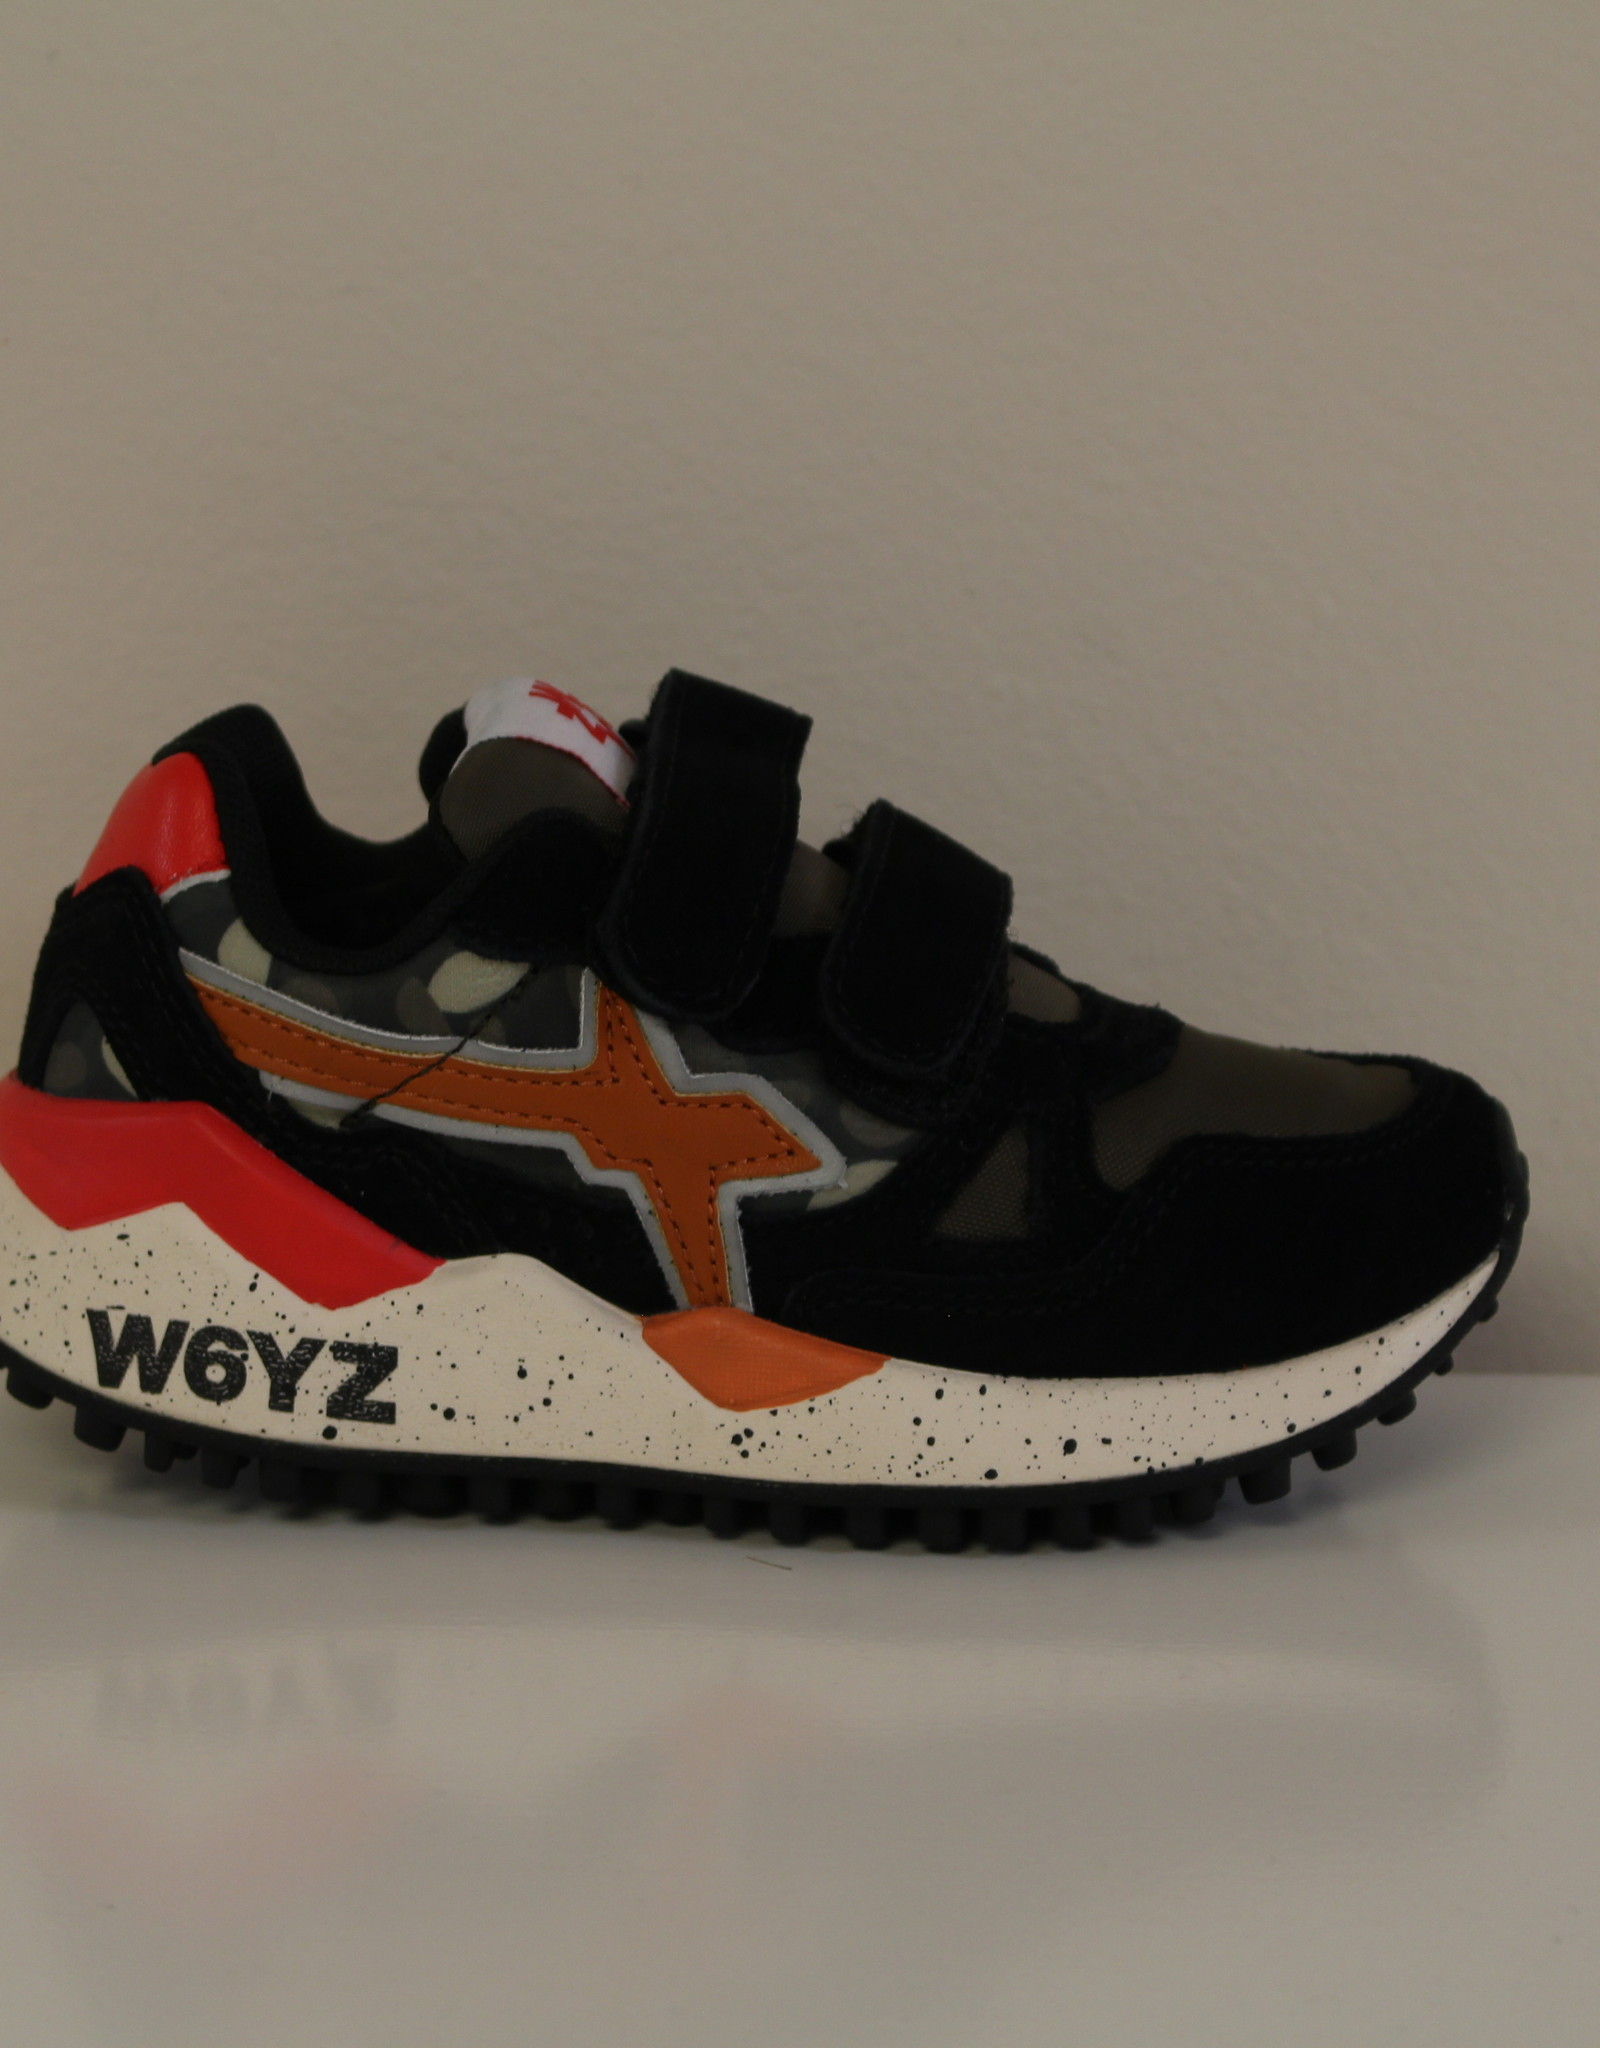 W6YZ wolf velour/cord camouflage nero-militare-rosso